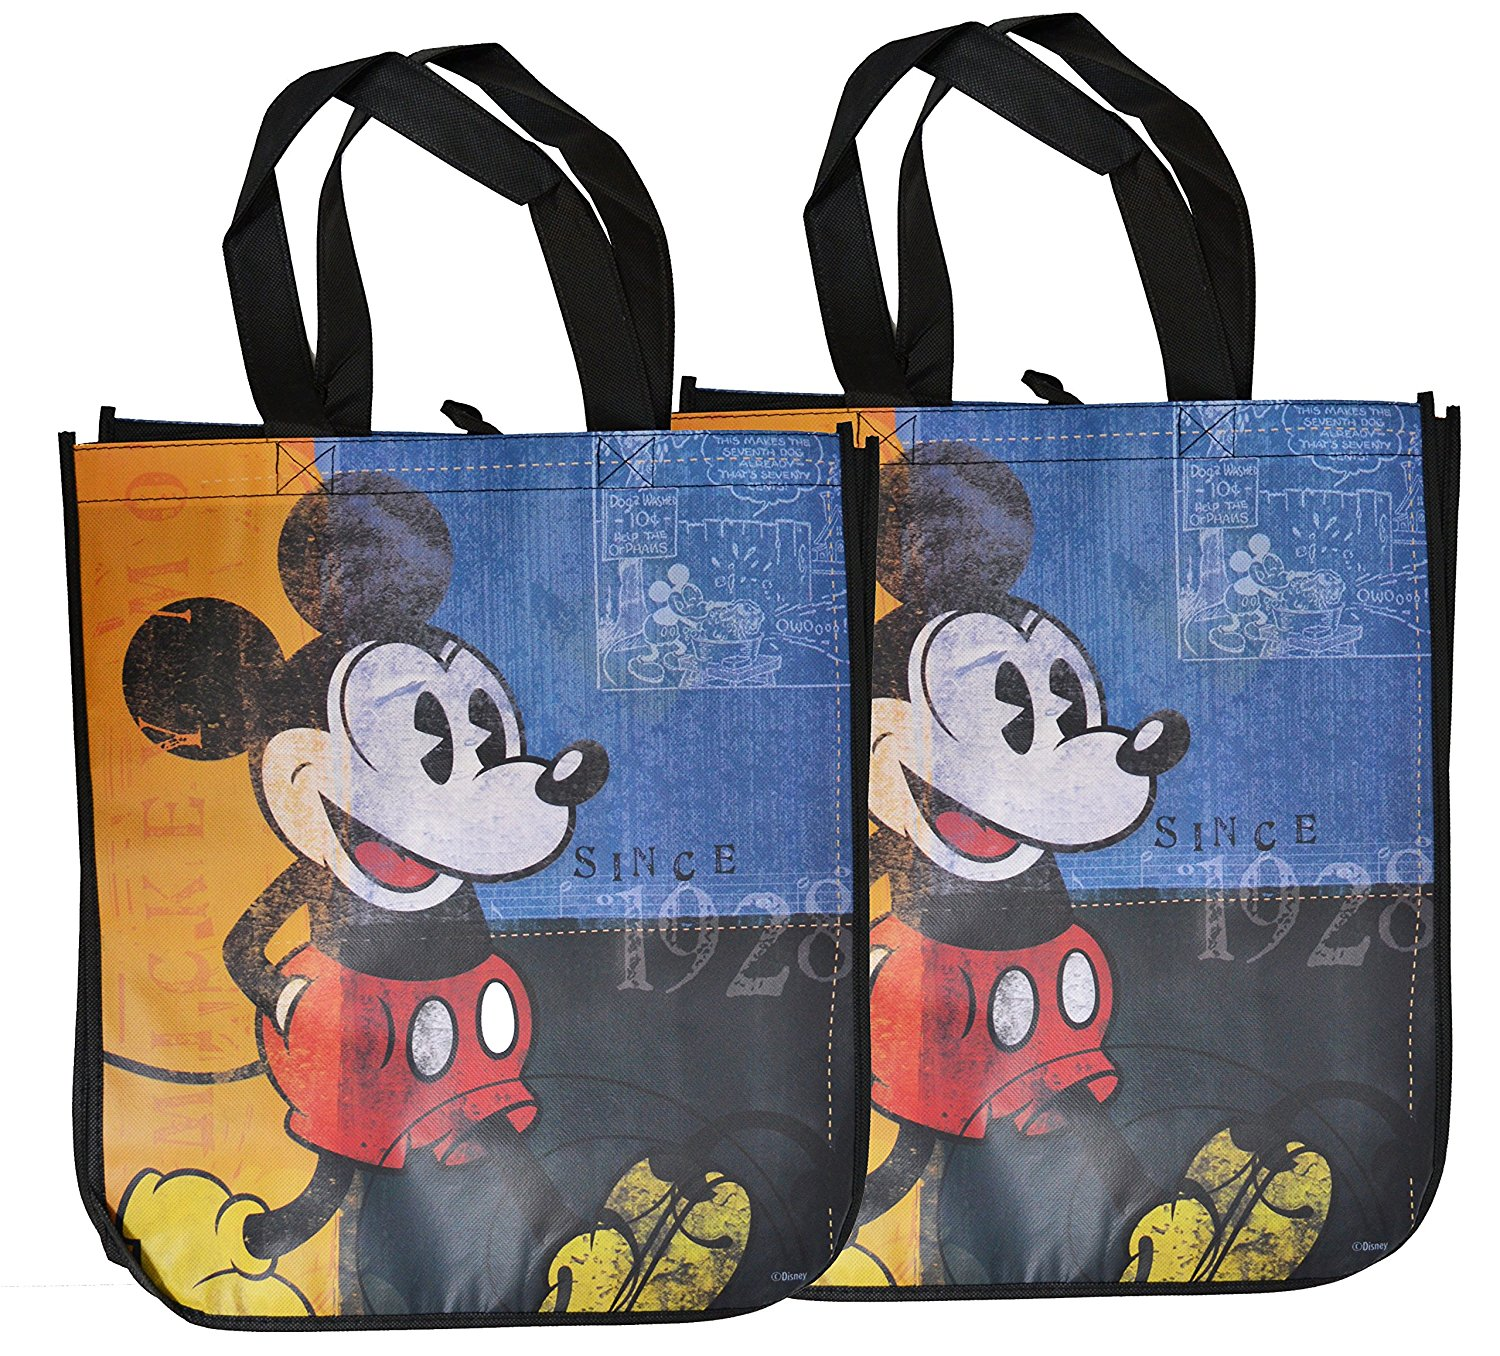 3bc57f4000 Mickey Mouse - Mickey Mouse Reusable Grocery Tote Bags Set of 3 -  Walmart.com